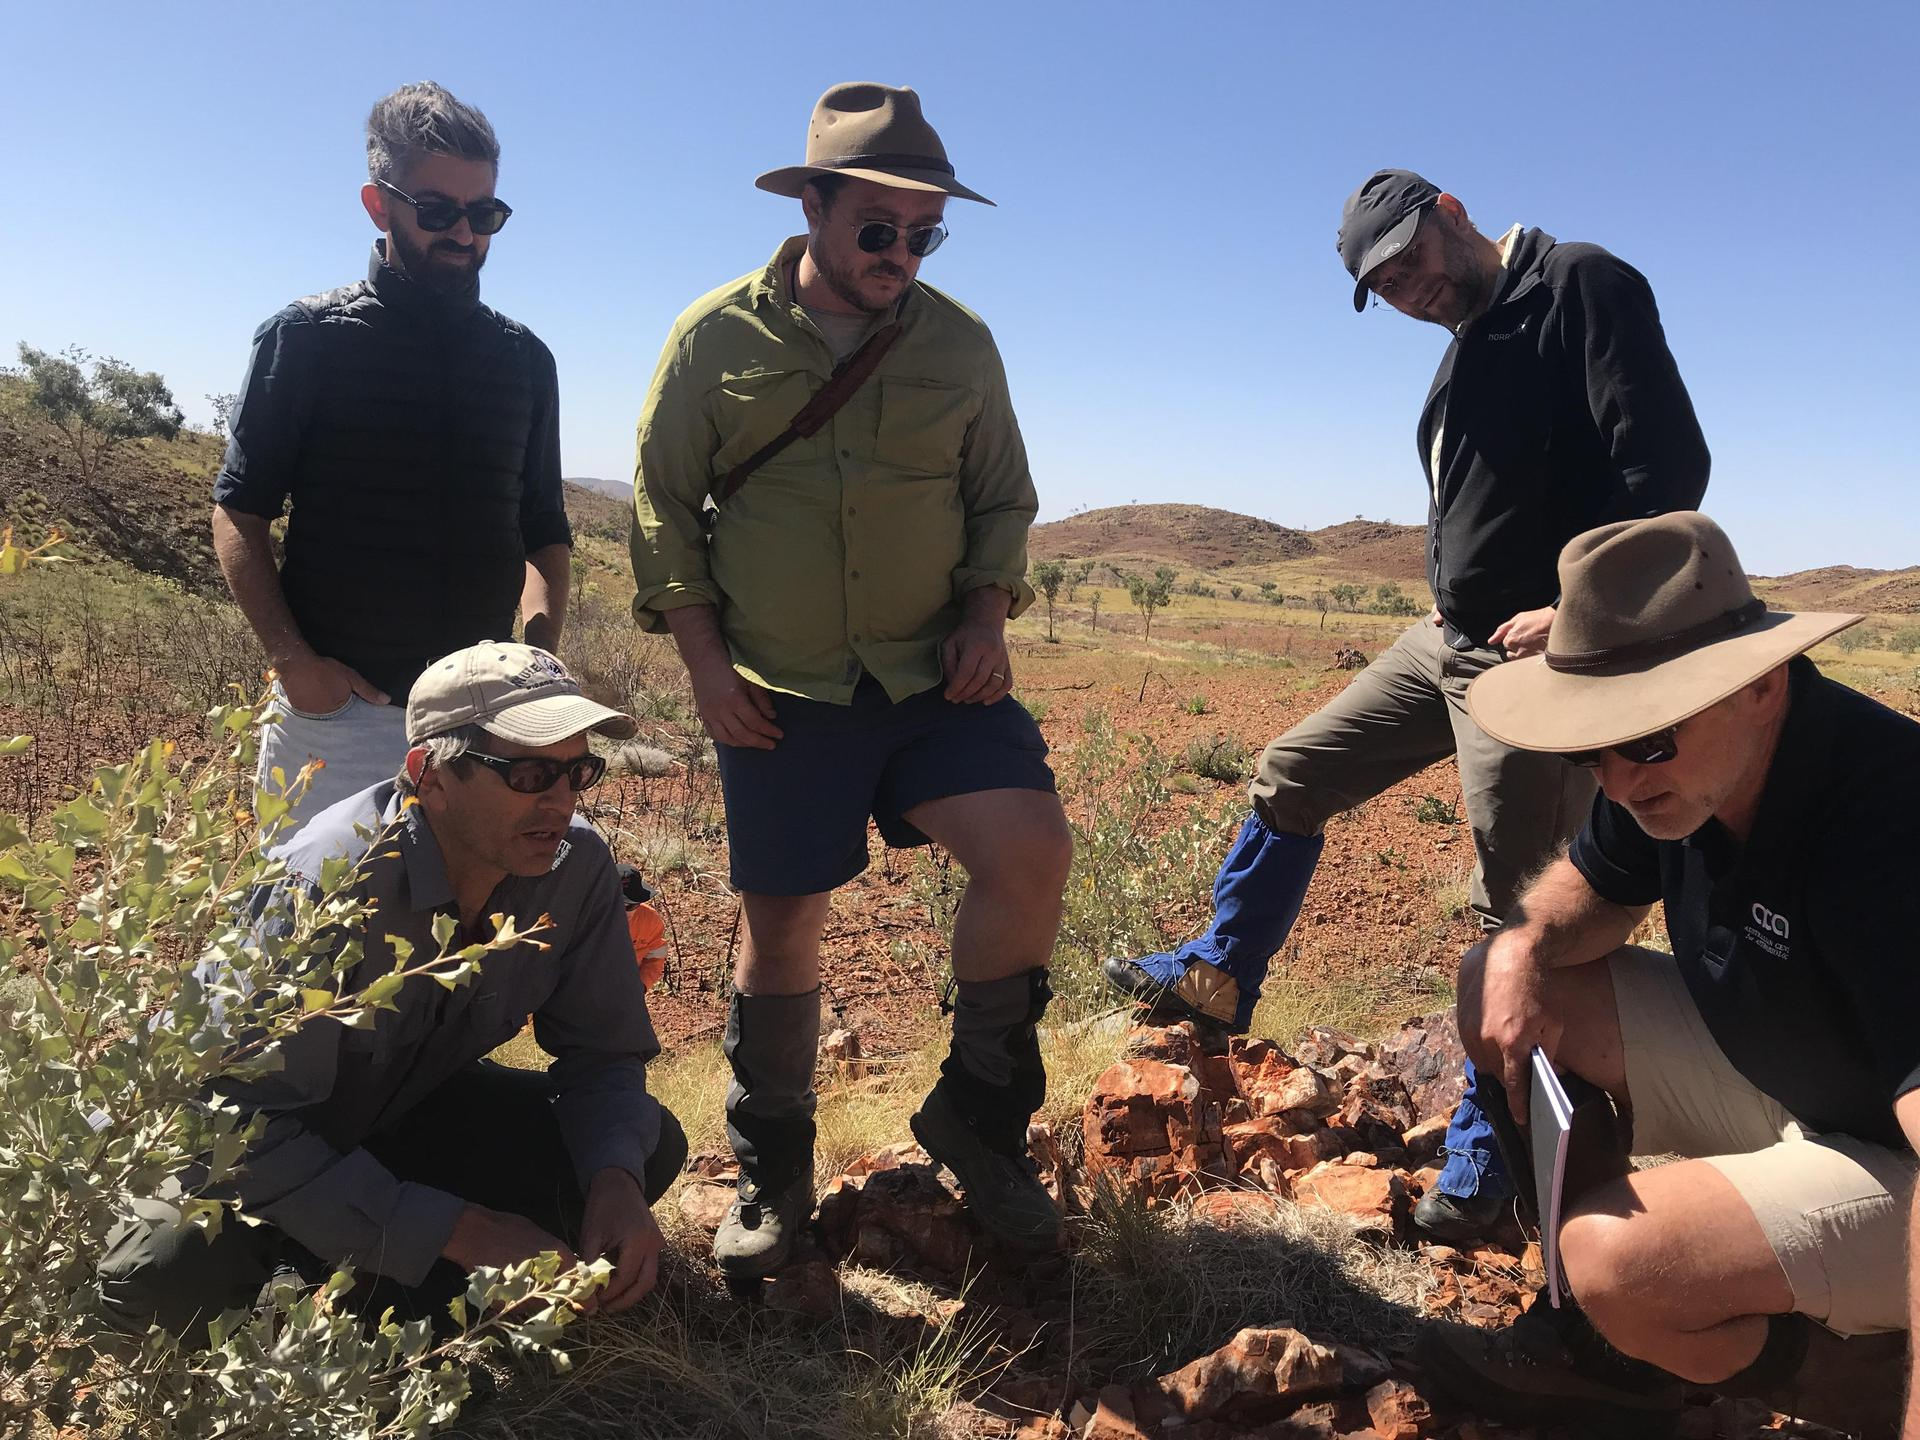 Clues for Mars in the Australian Outback